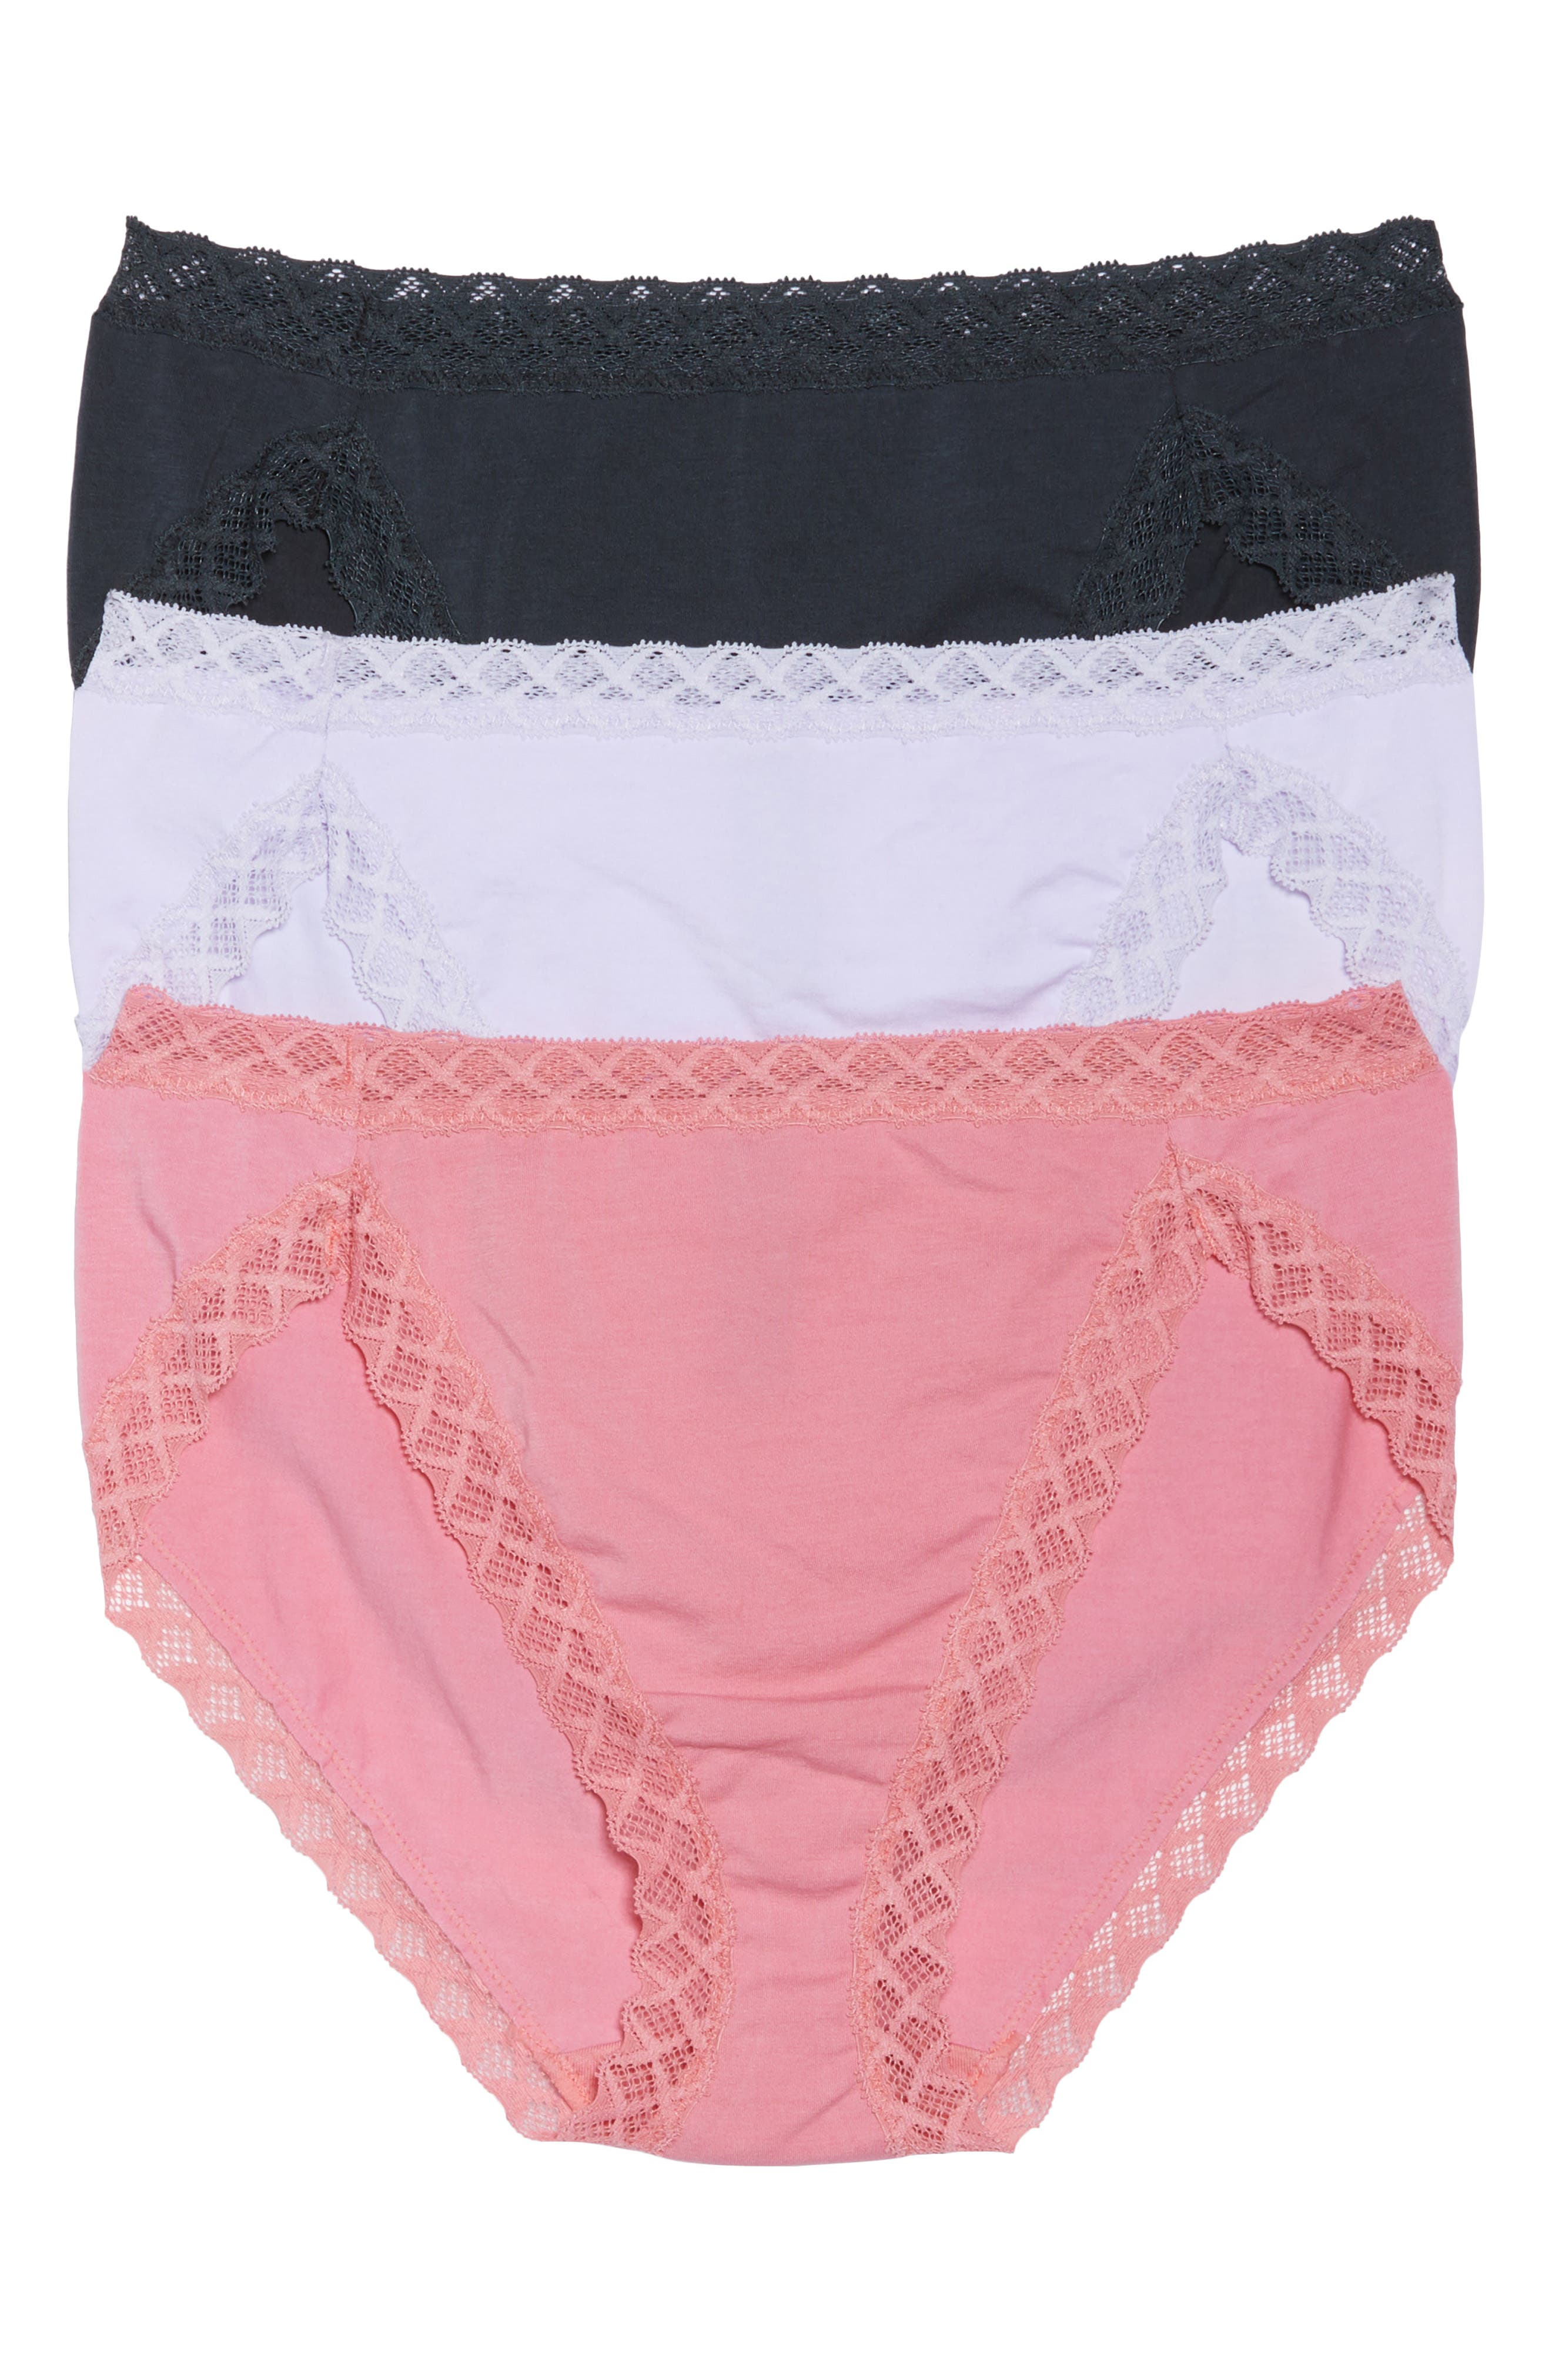 Alternate Image 1 Selected - Natori 'Bliss' French Cut Briefs (3-Pack)